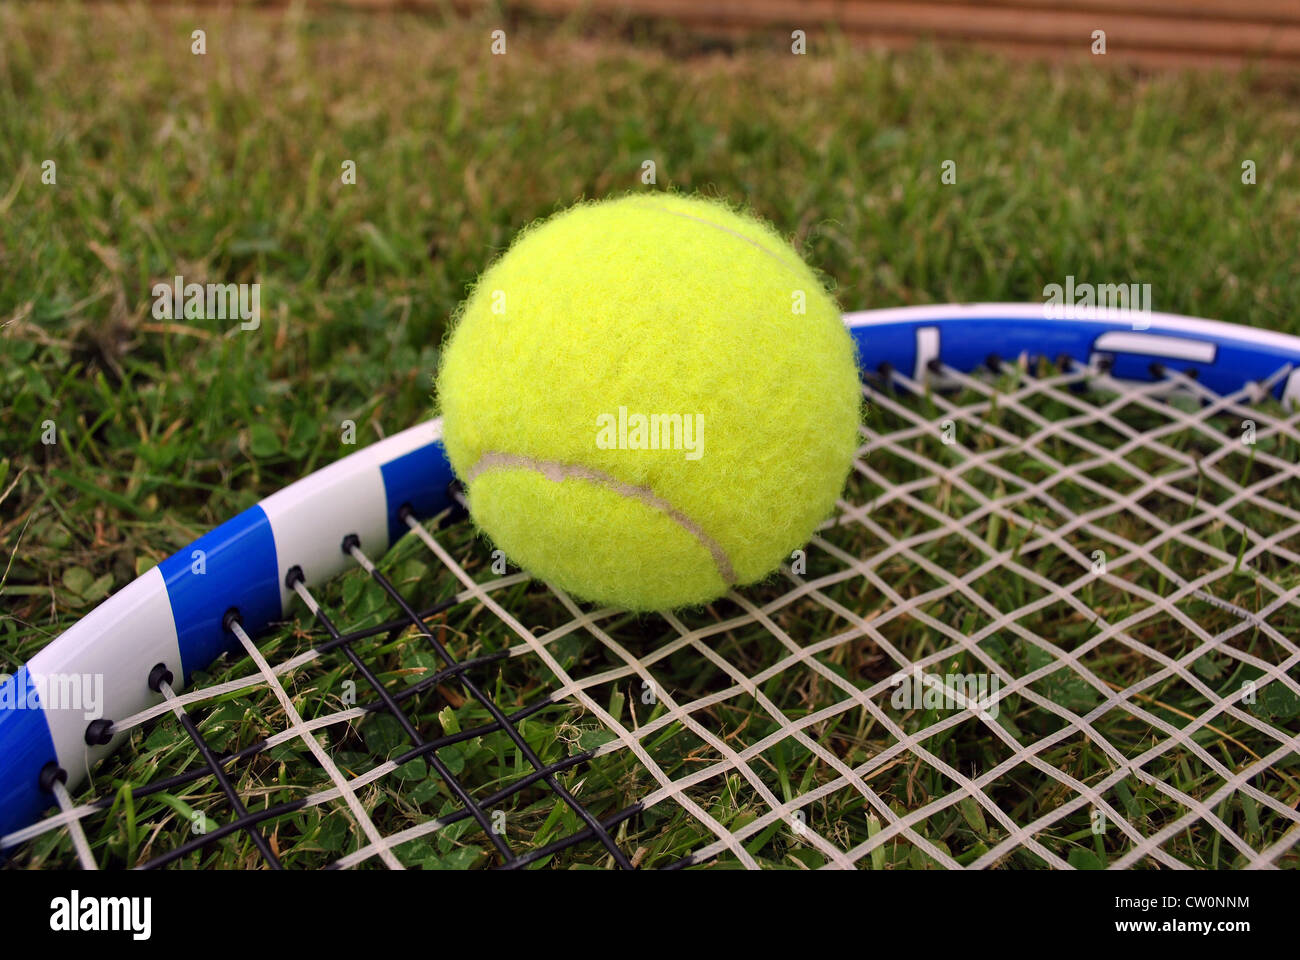 how to play tennis on grass courts